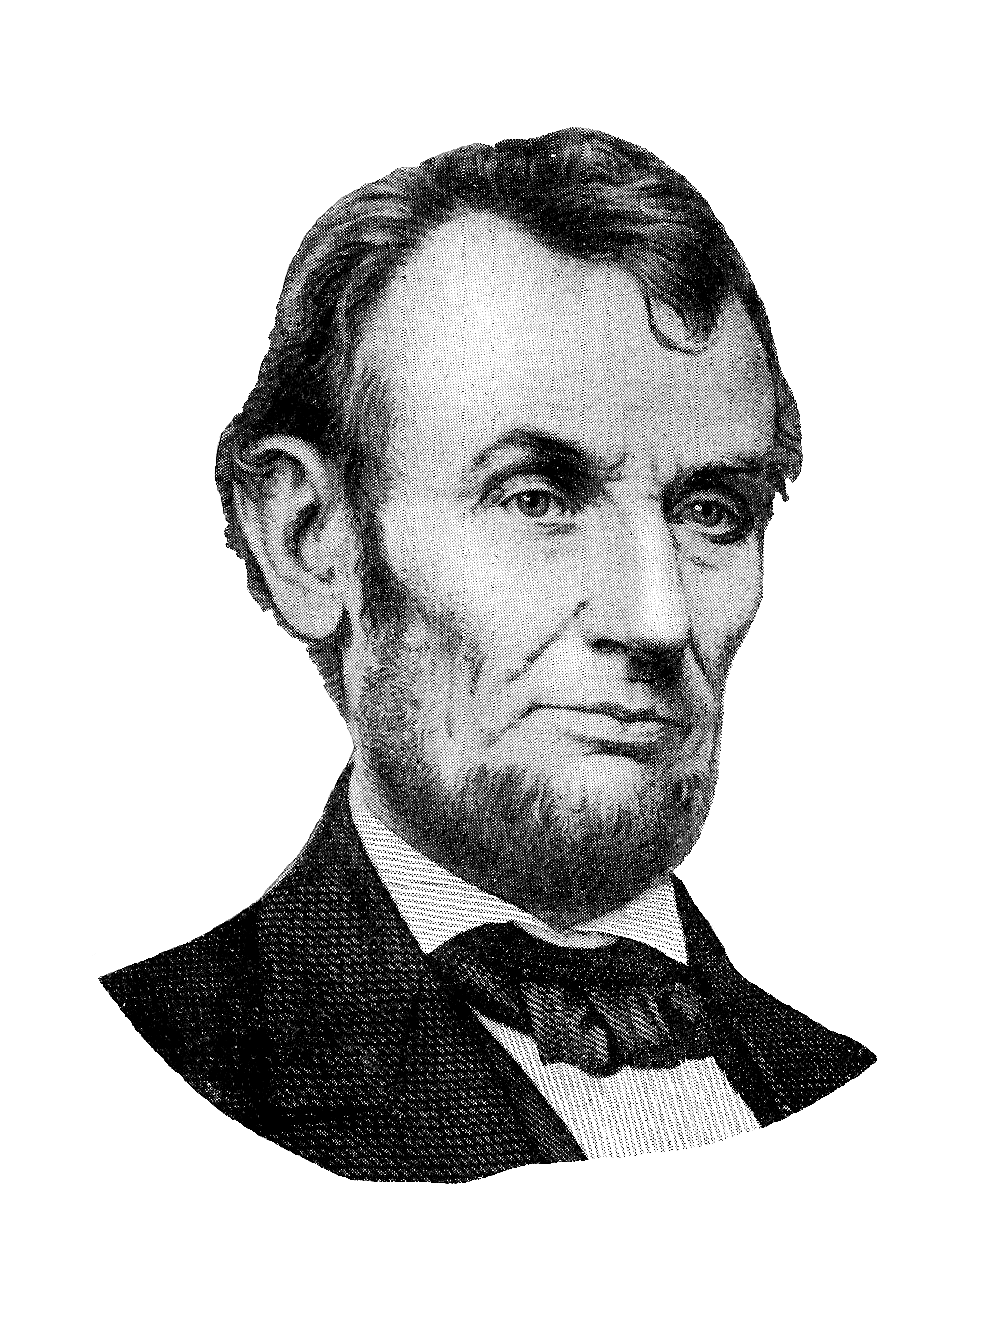 abraham lincoln hat clipart - photo #23